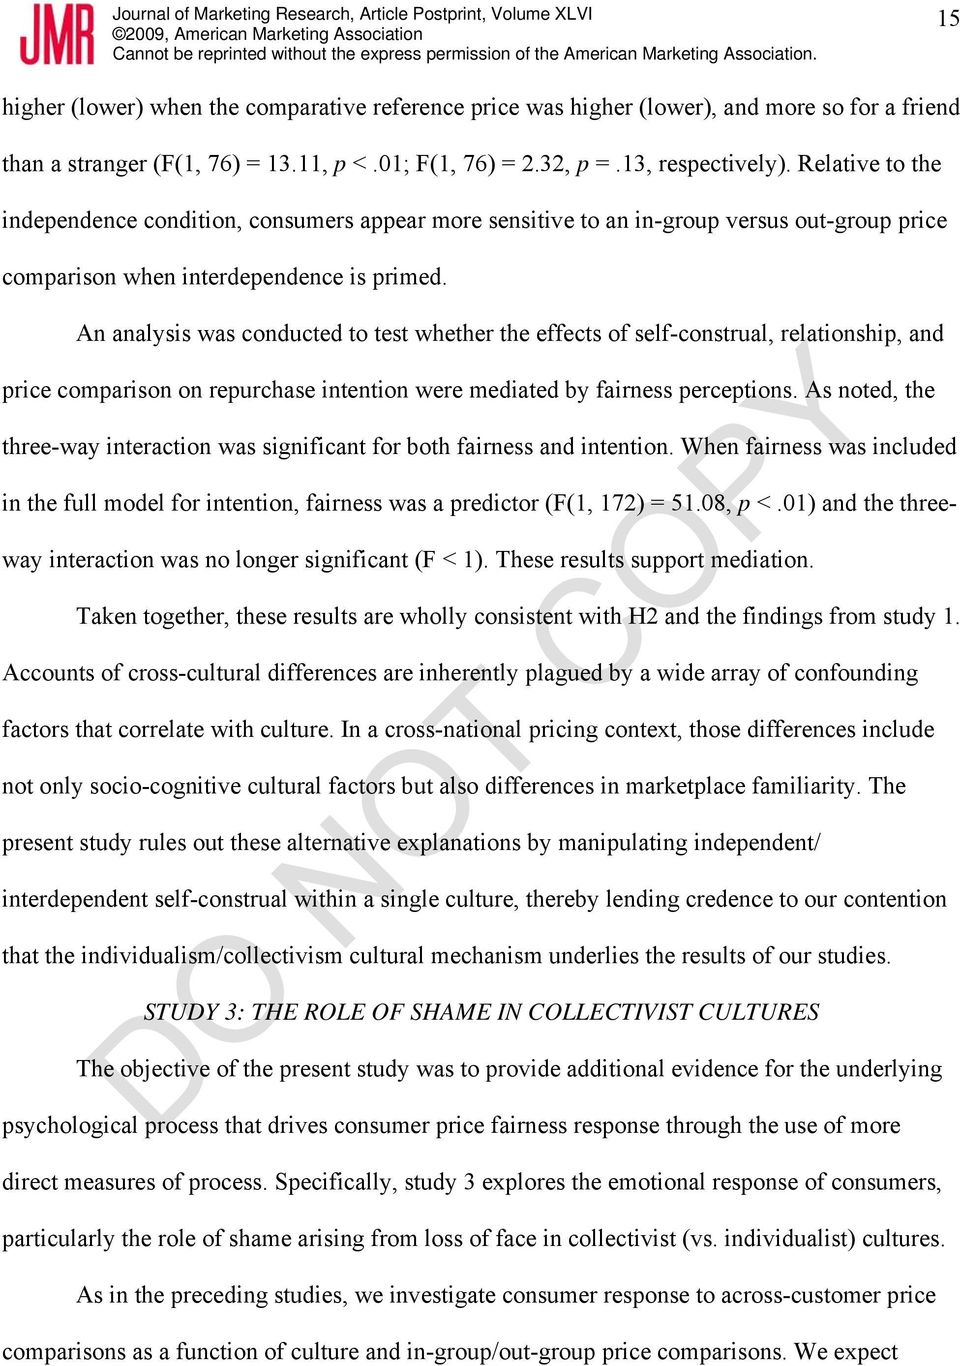 An analysis was conducted to test whether the effects of self-construal, relationship, and price comparison on repurchase intention were mediated by fairness perceptions.